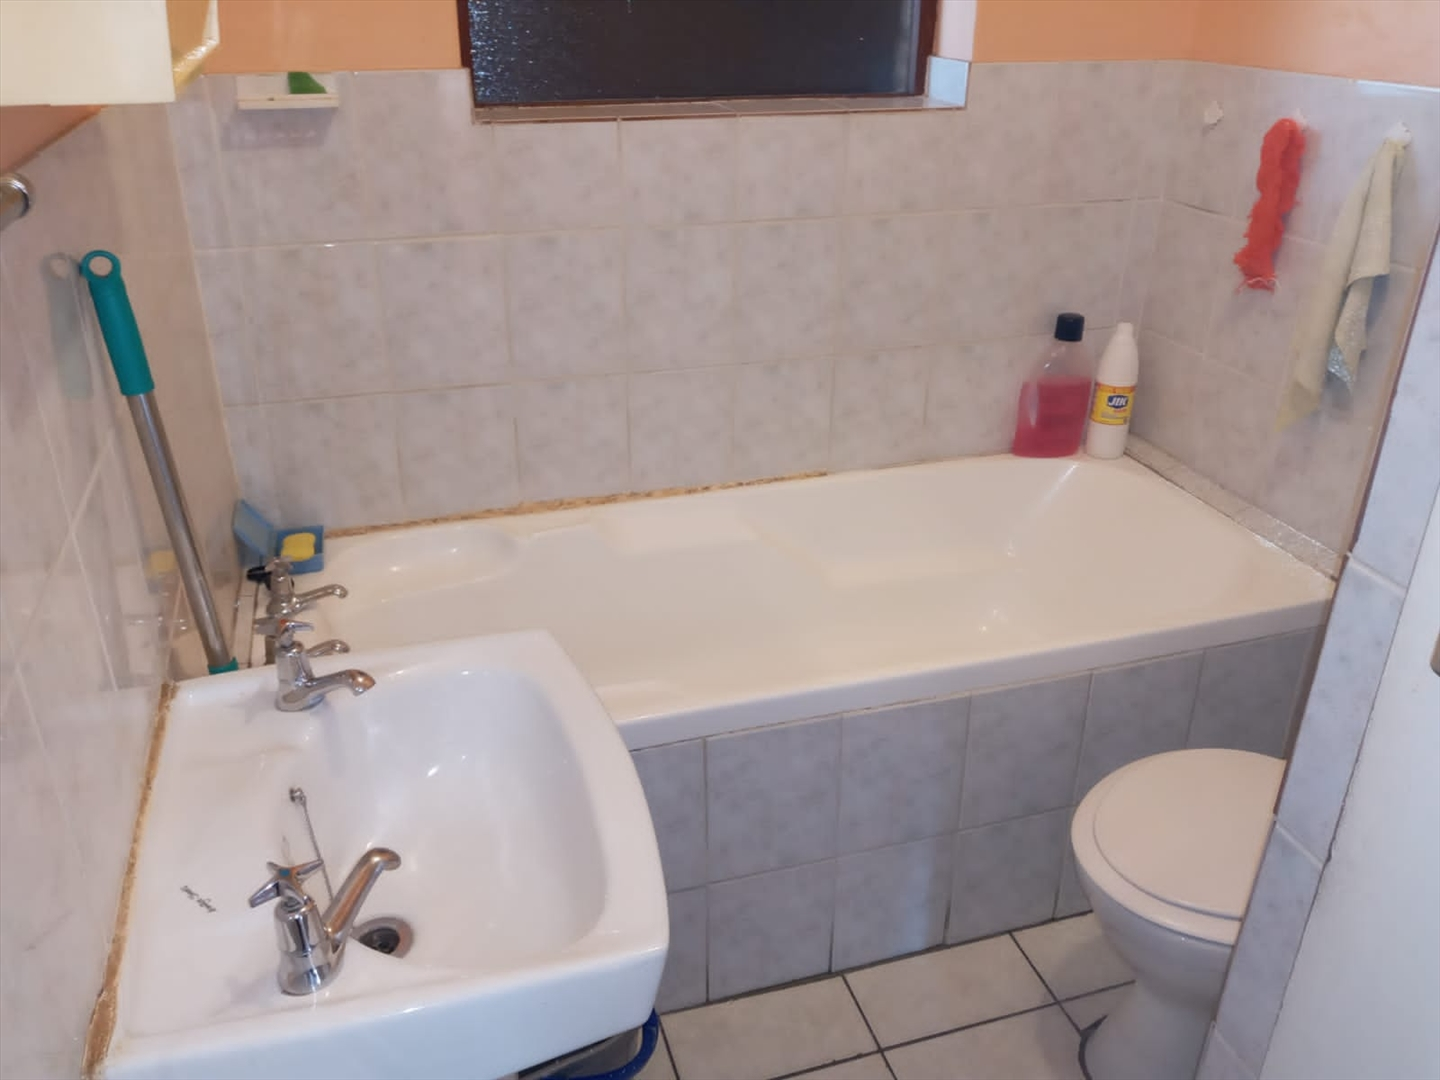 Bathroom with bath, wash basin, toilet and shower on right